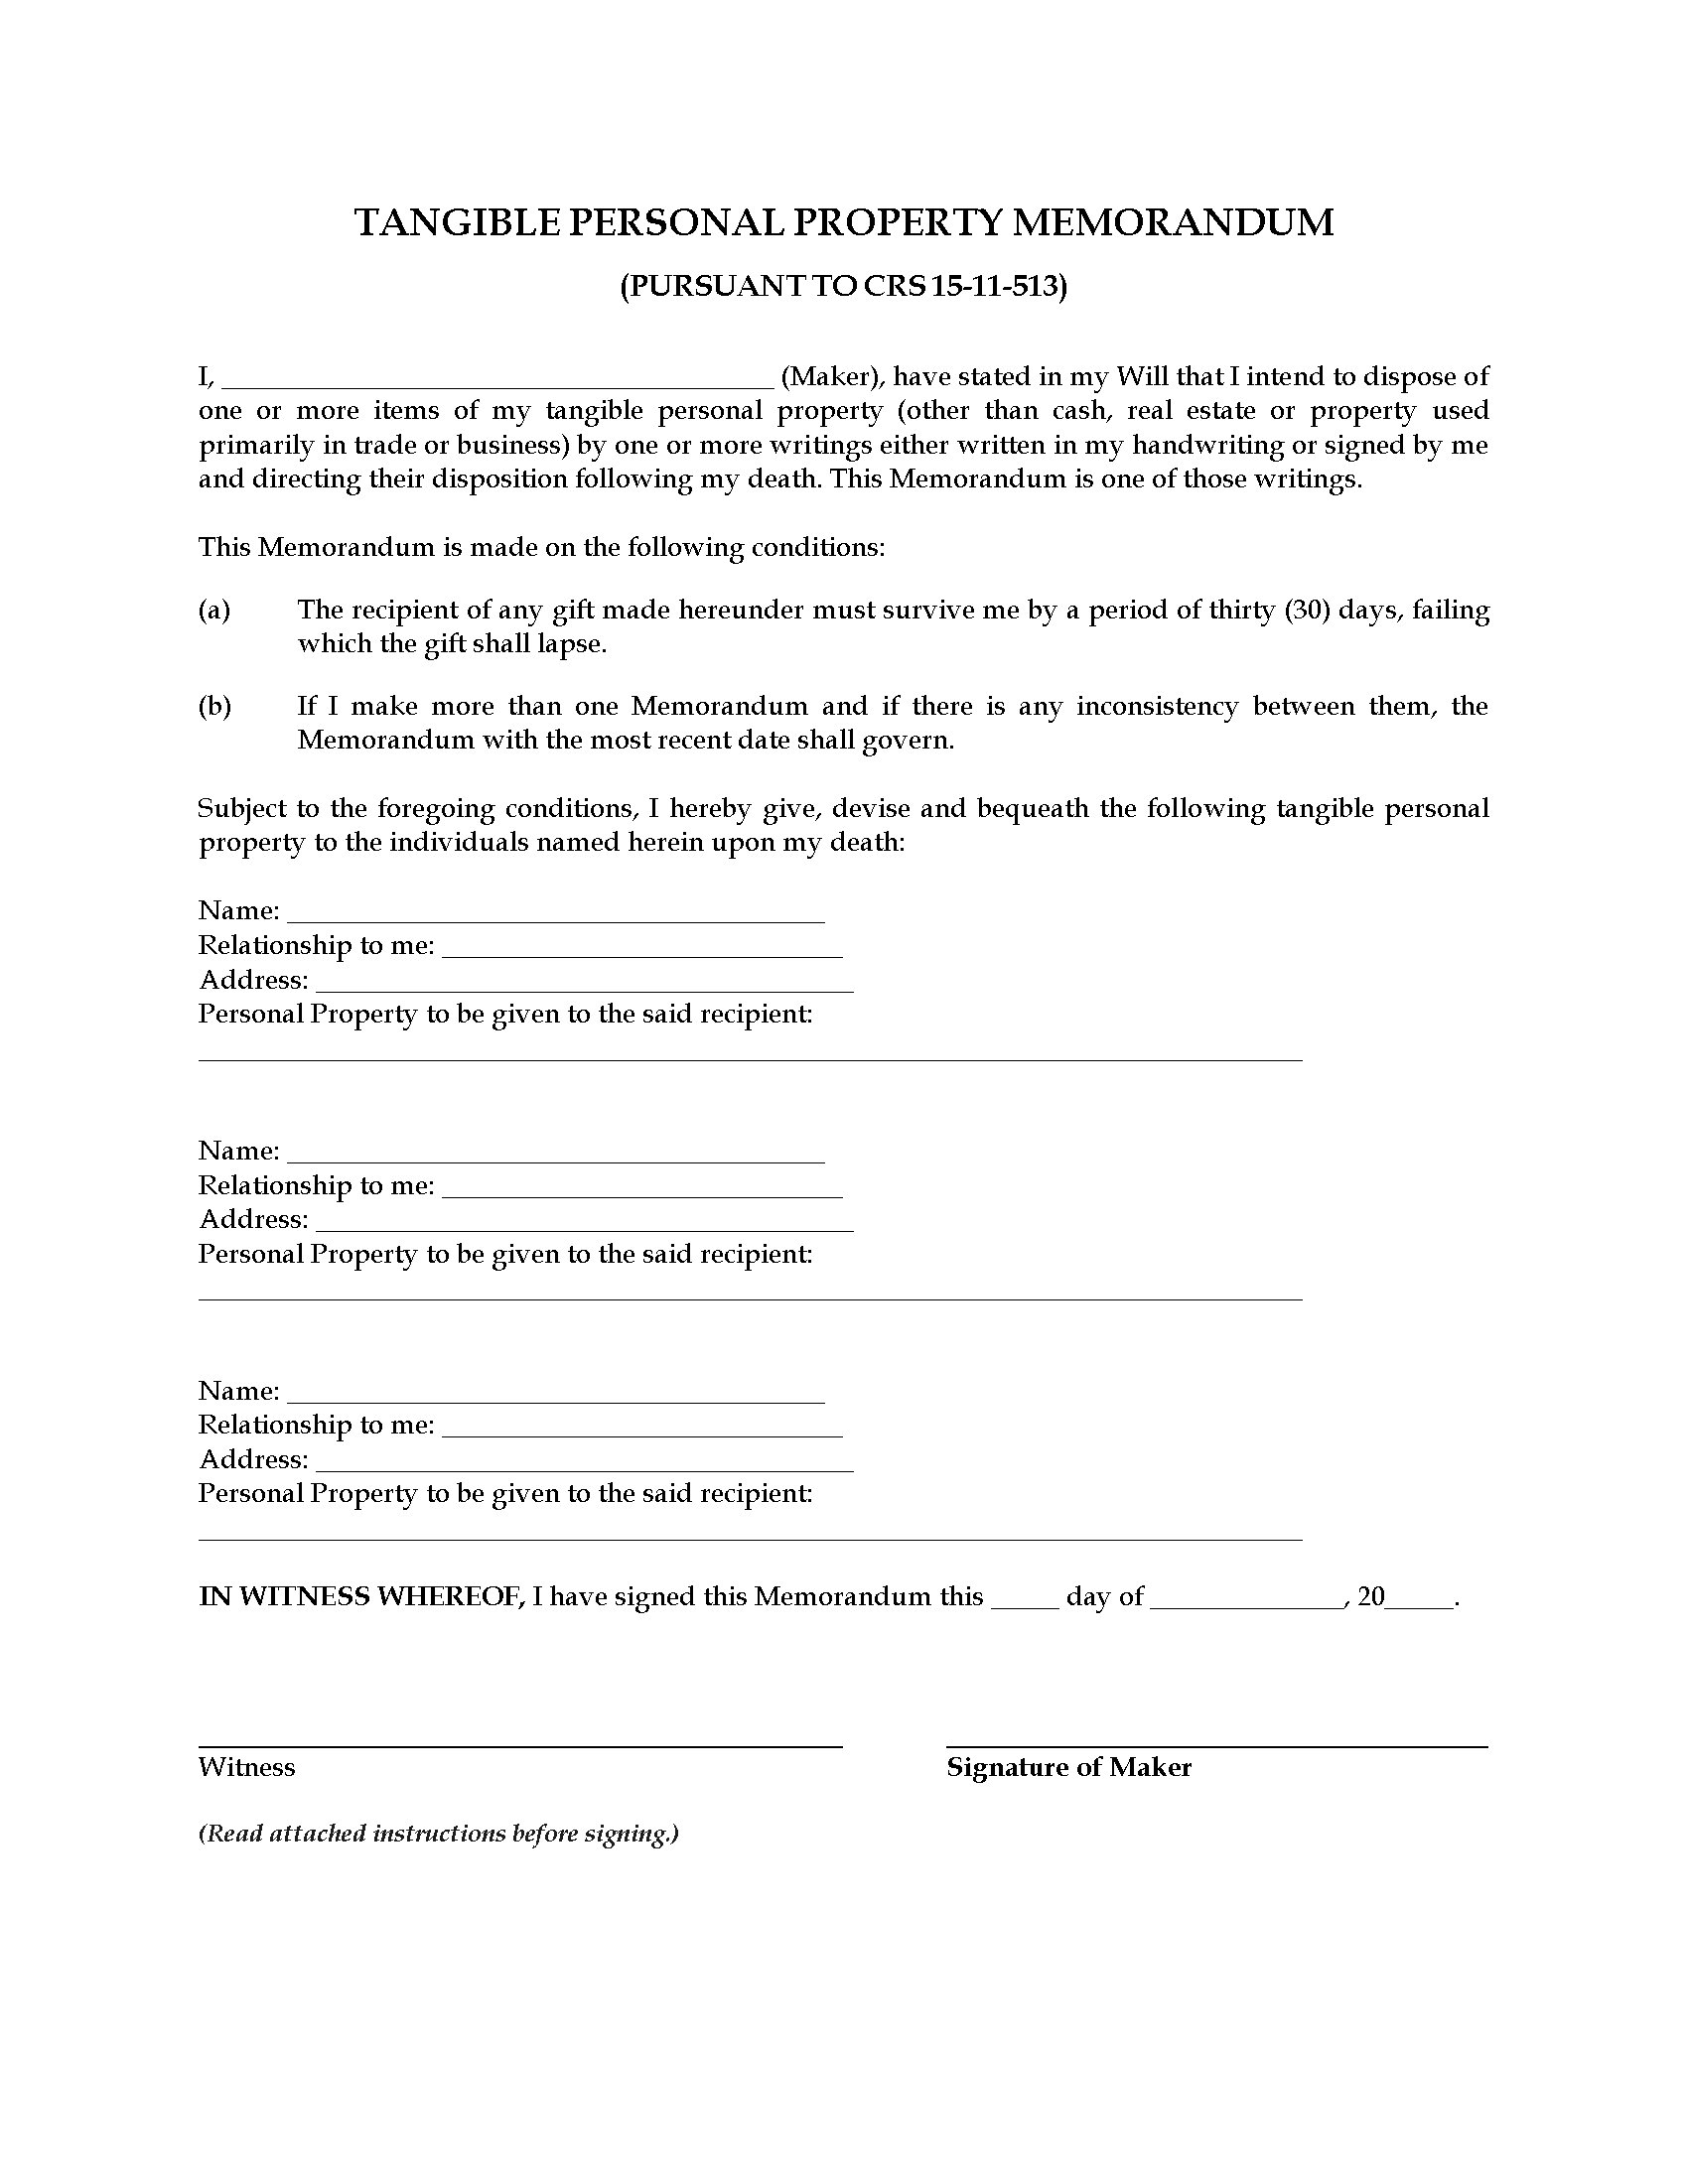 colorado tangible personal property memorandum legal forms and picture of colorado tangible personal property memorandum